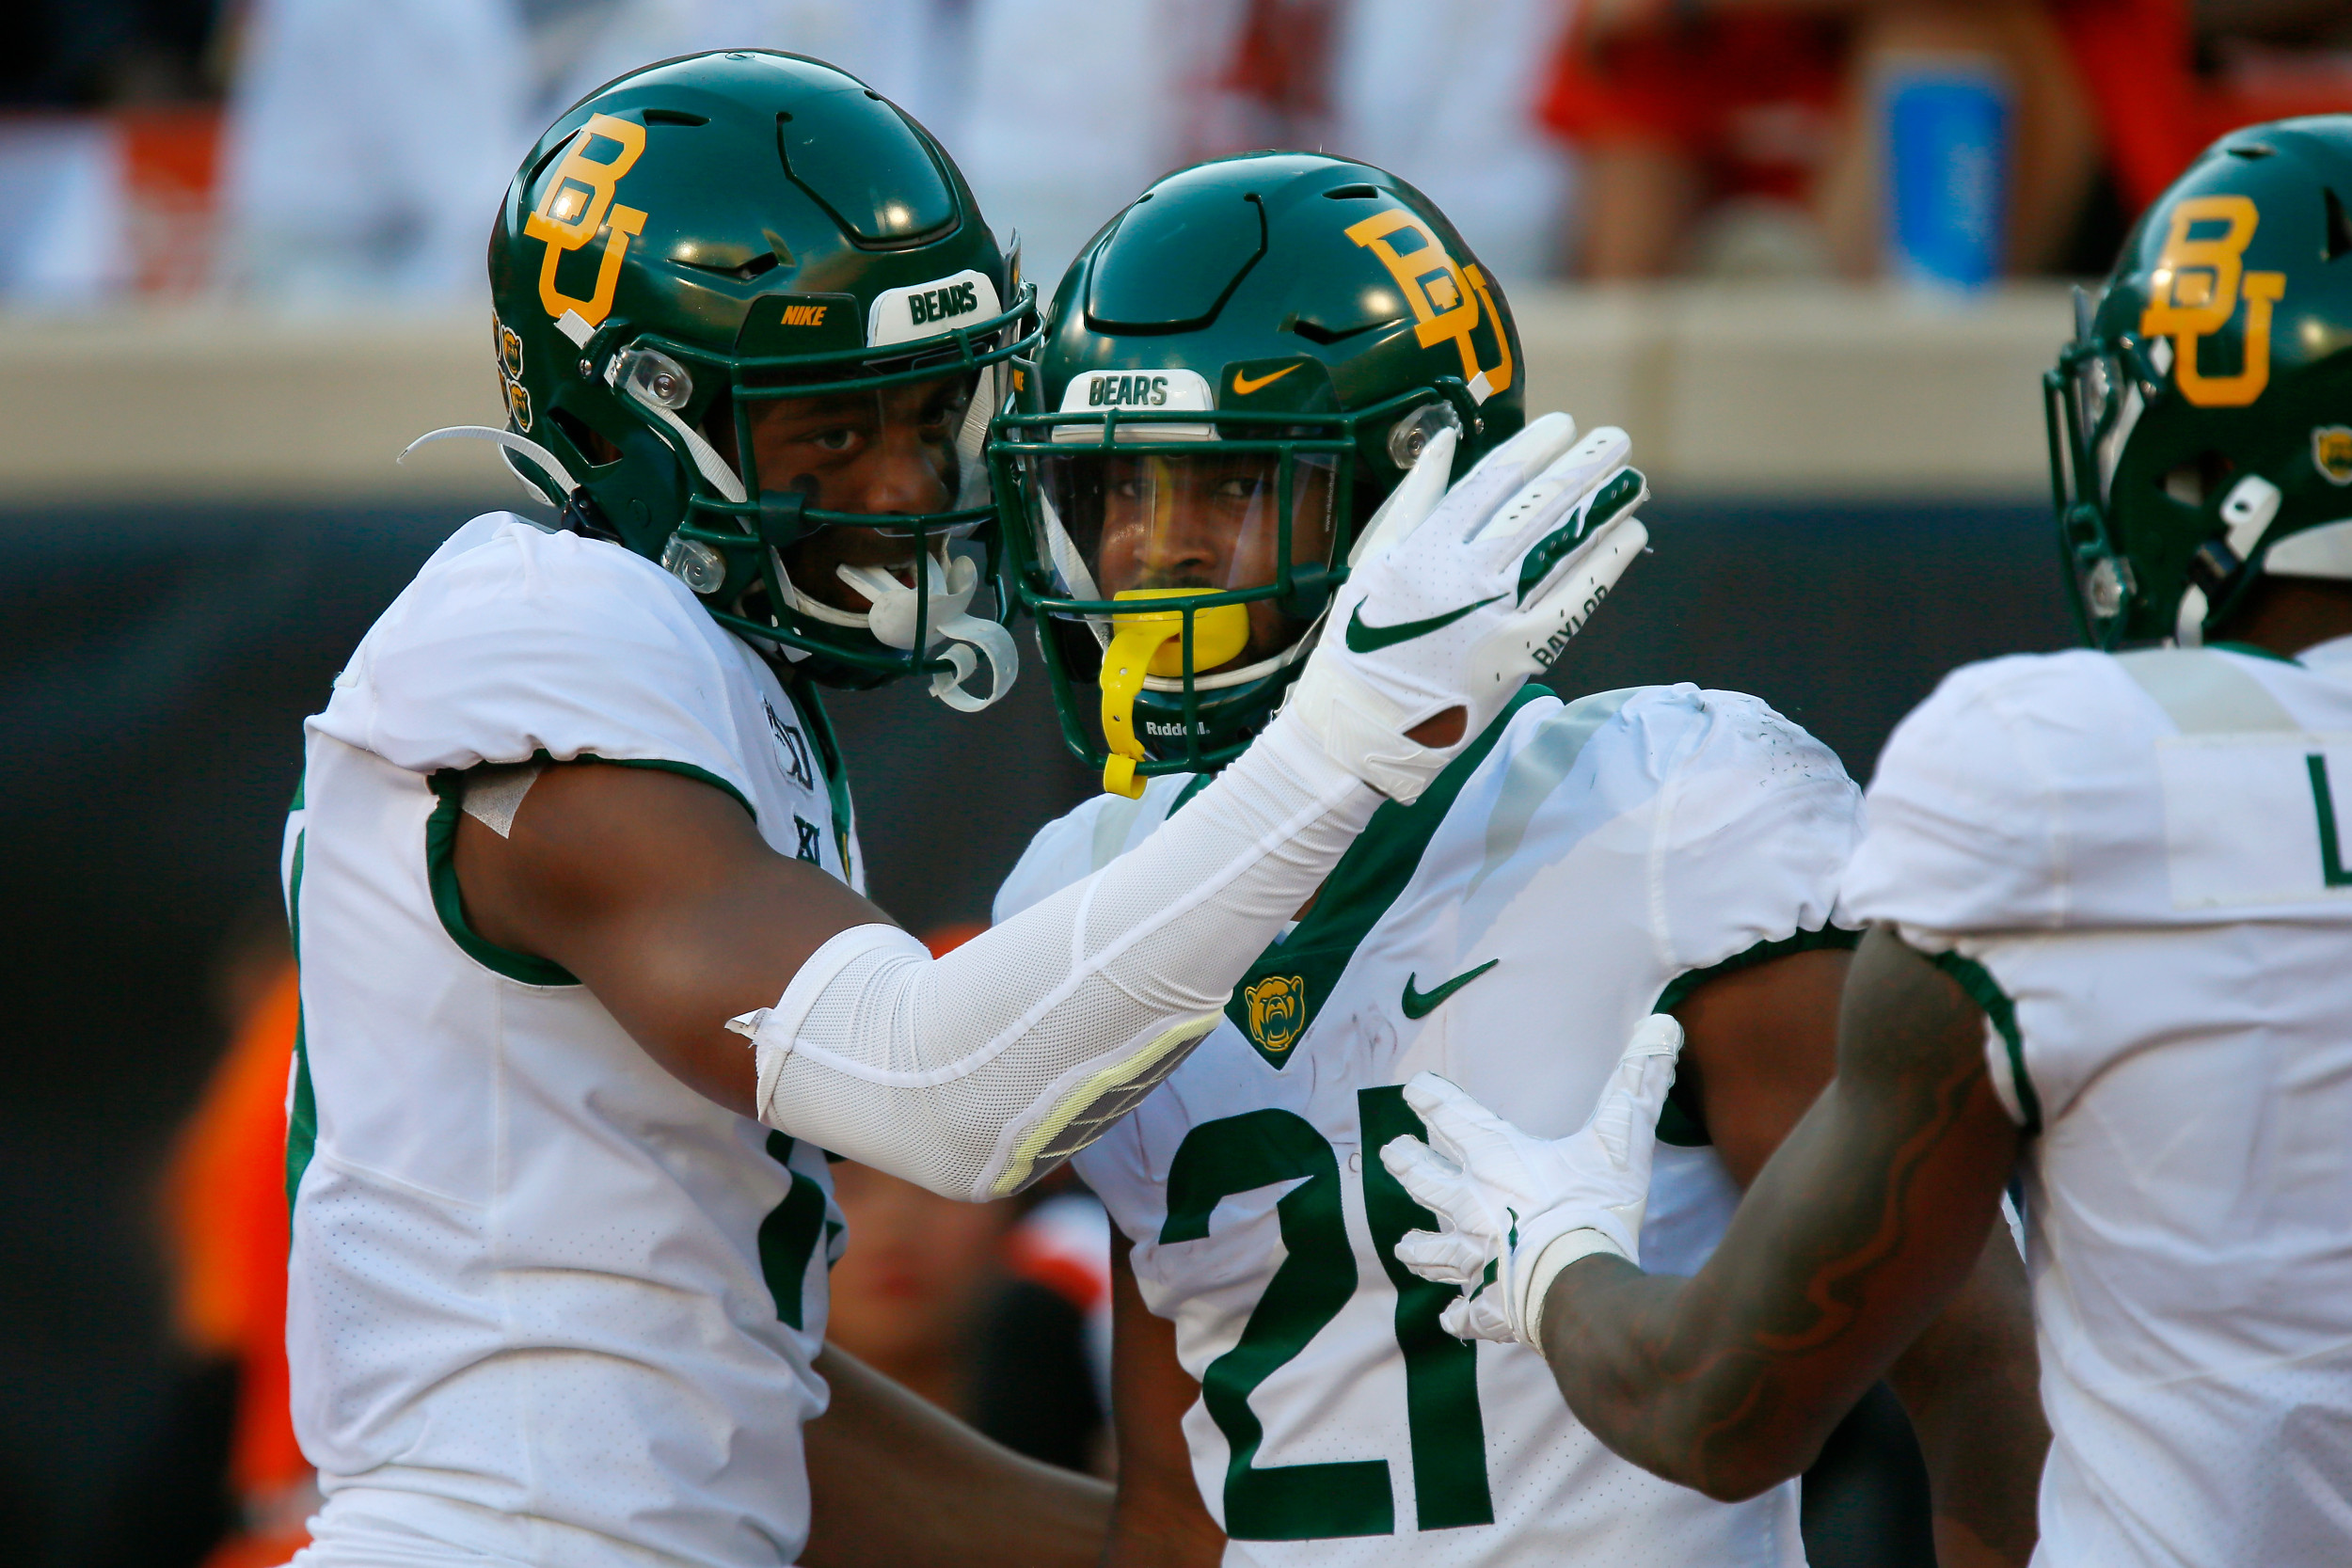 College Football Tv Schedule 2019 Where To Watch West